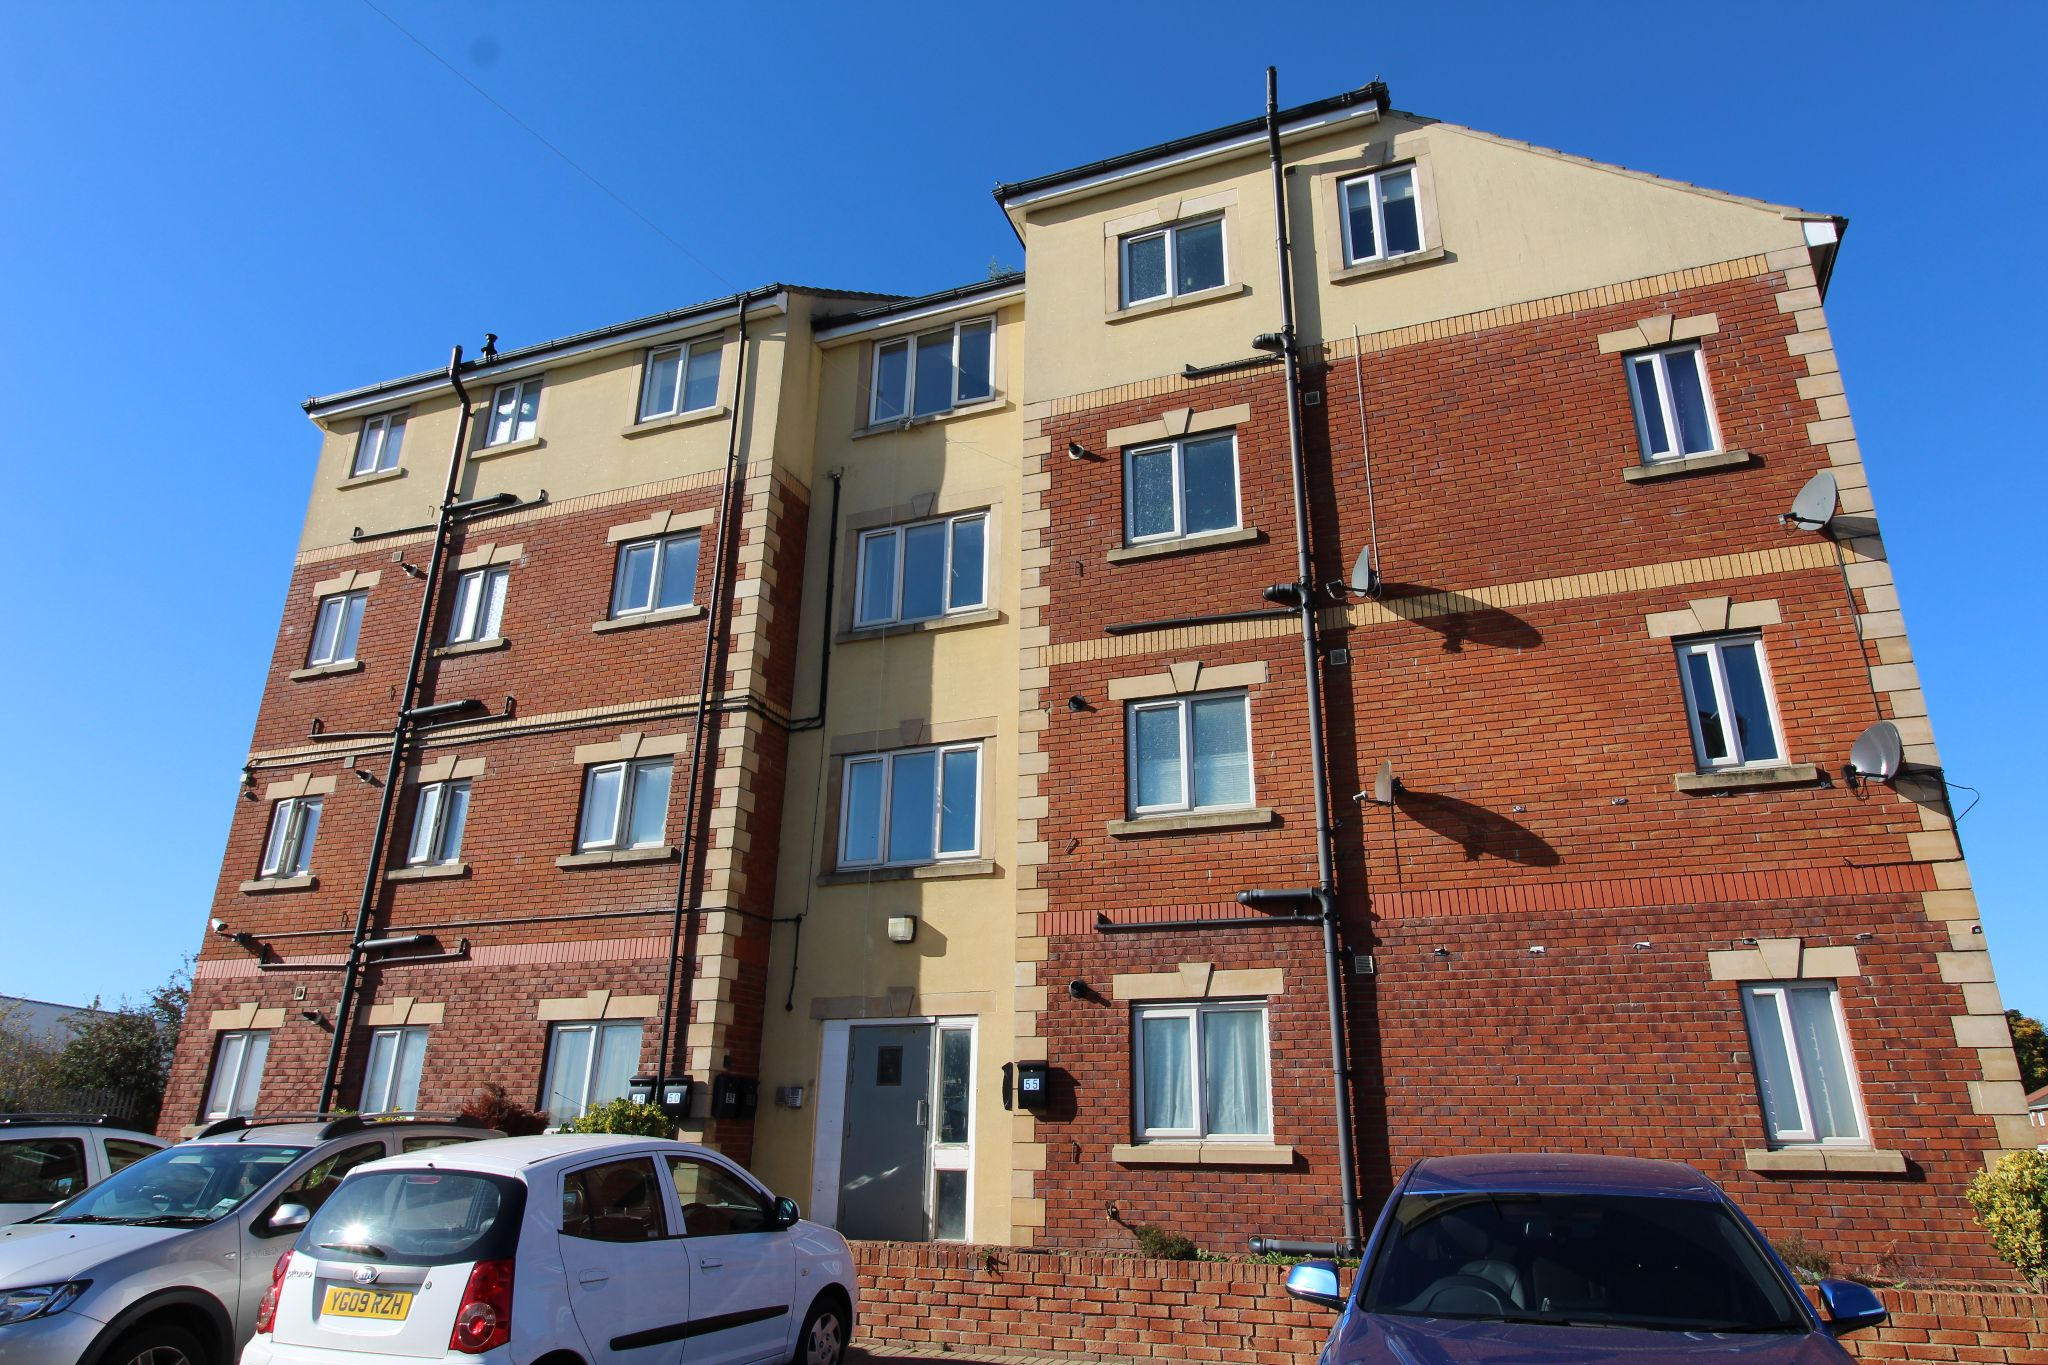 2 bedroom apartment flat/apartment For Sale in Bishop Auckland - Photograph 1.